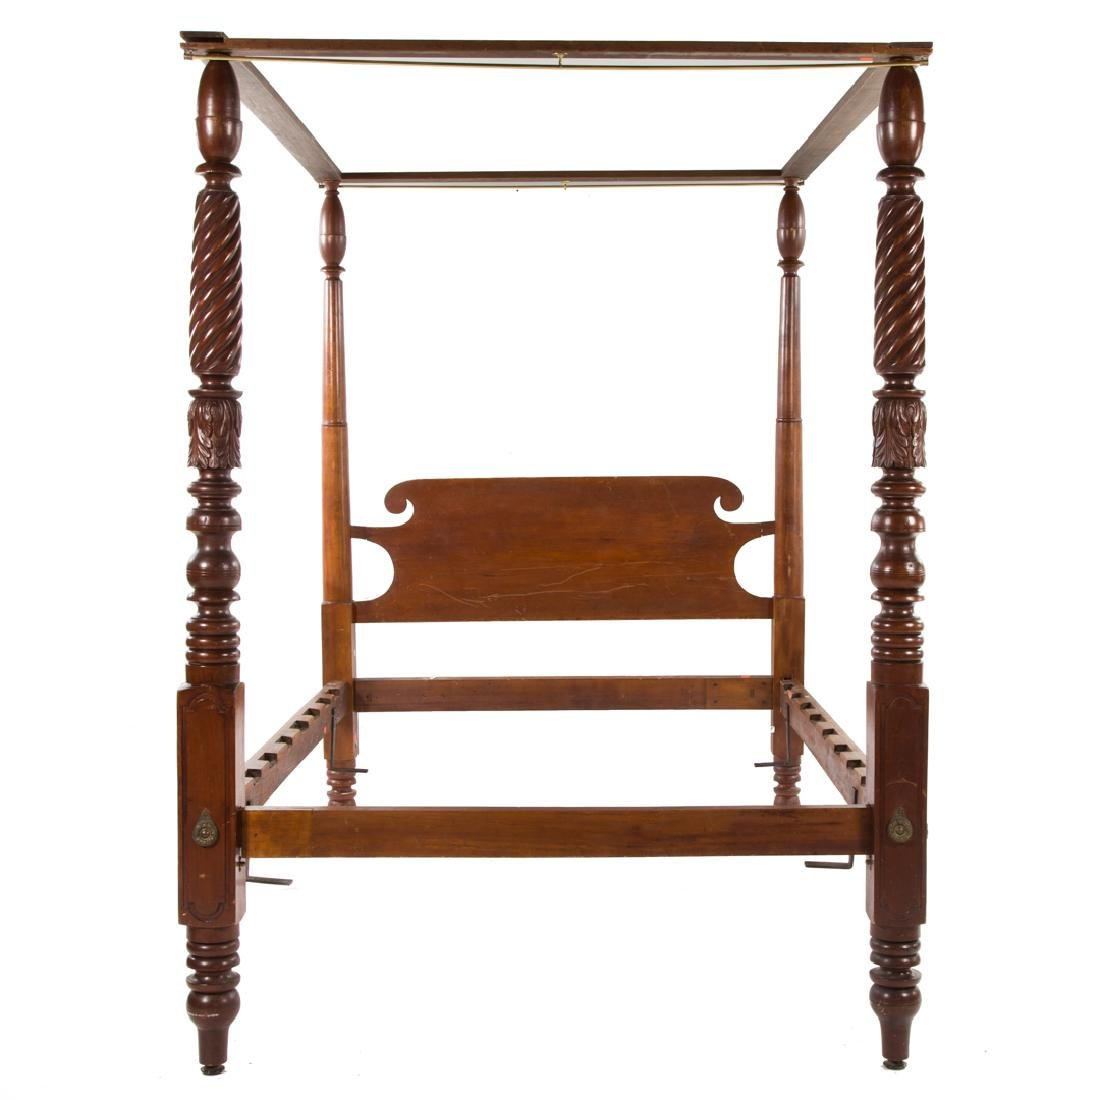 American Classical bedstead,